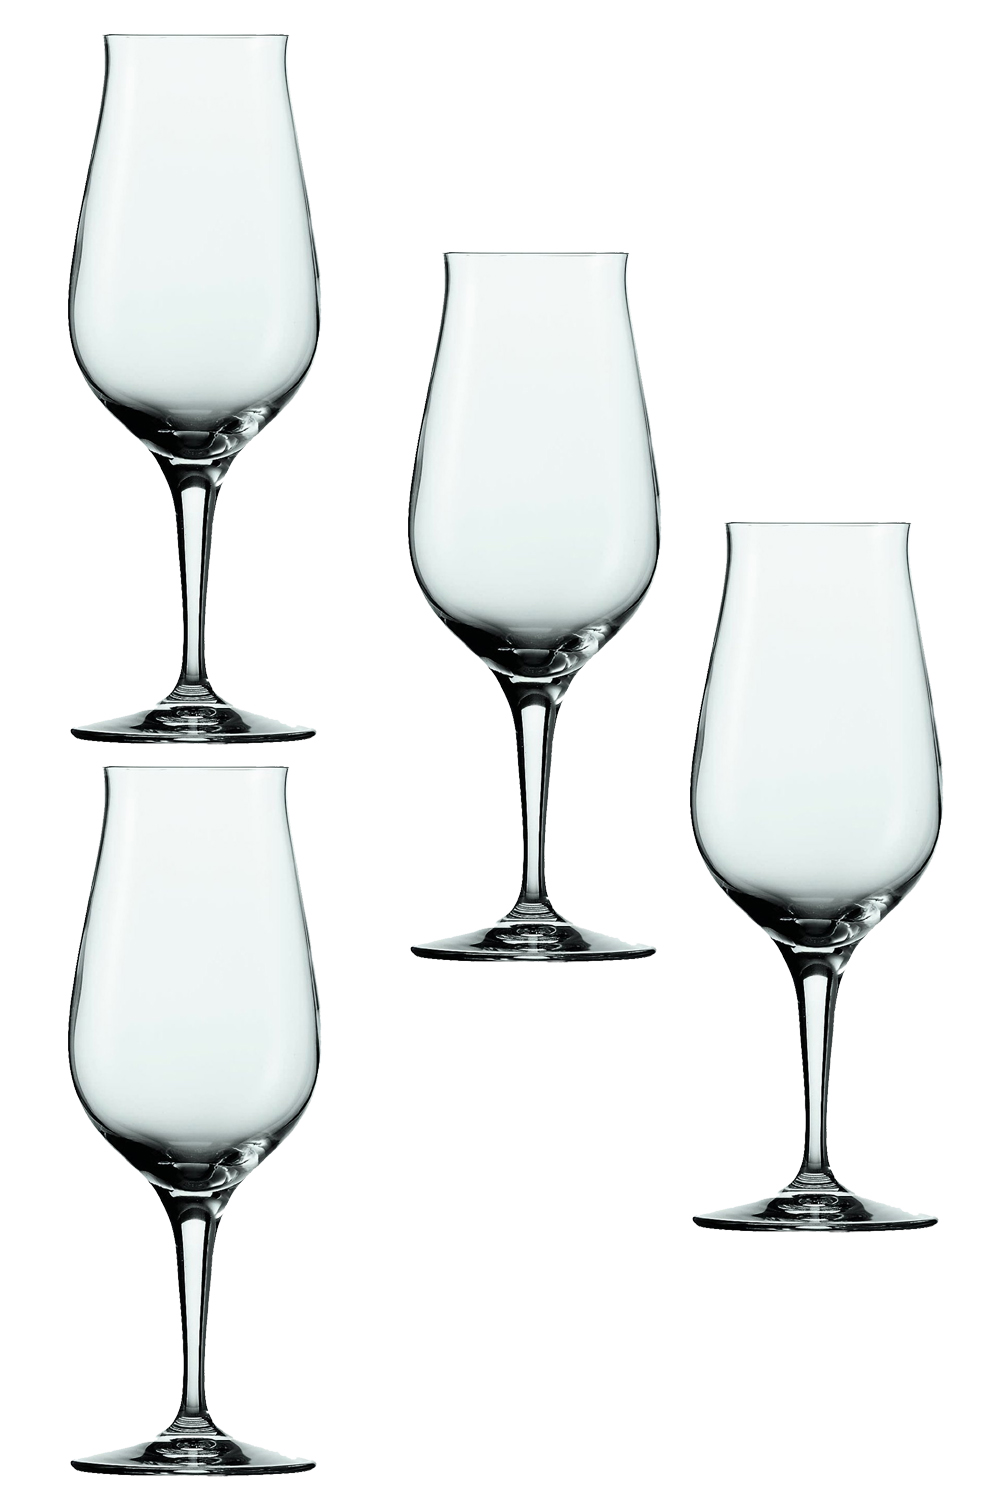 spiegelau gl ser whisky snifter set 2 teilig als 4 gp erh tlich whisky. Black Bedroom Furniture Sets. Home Design Ideas